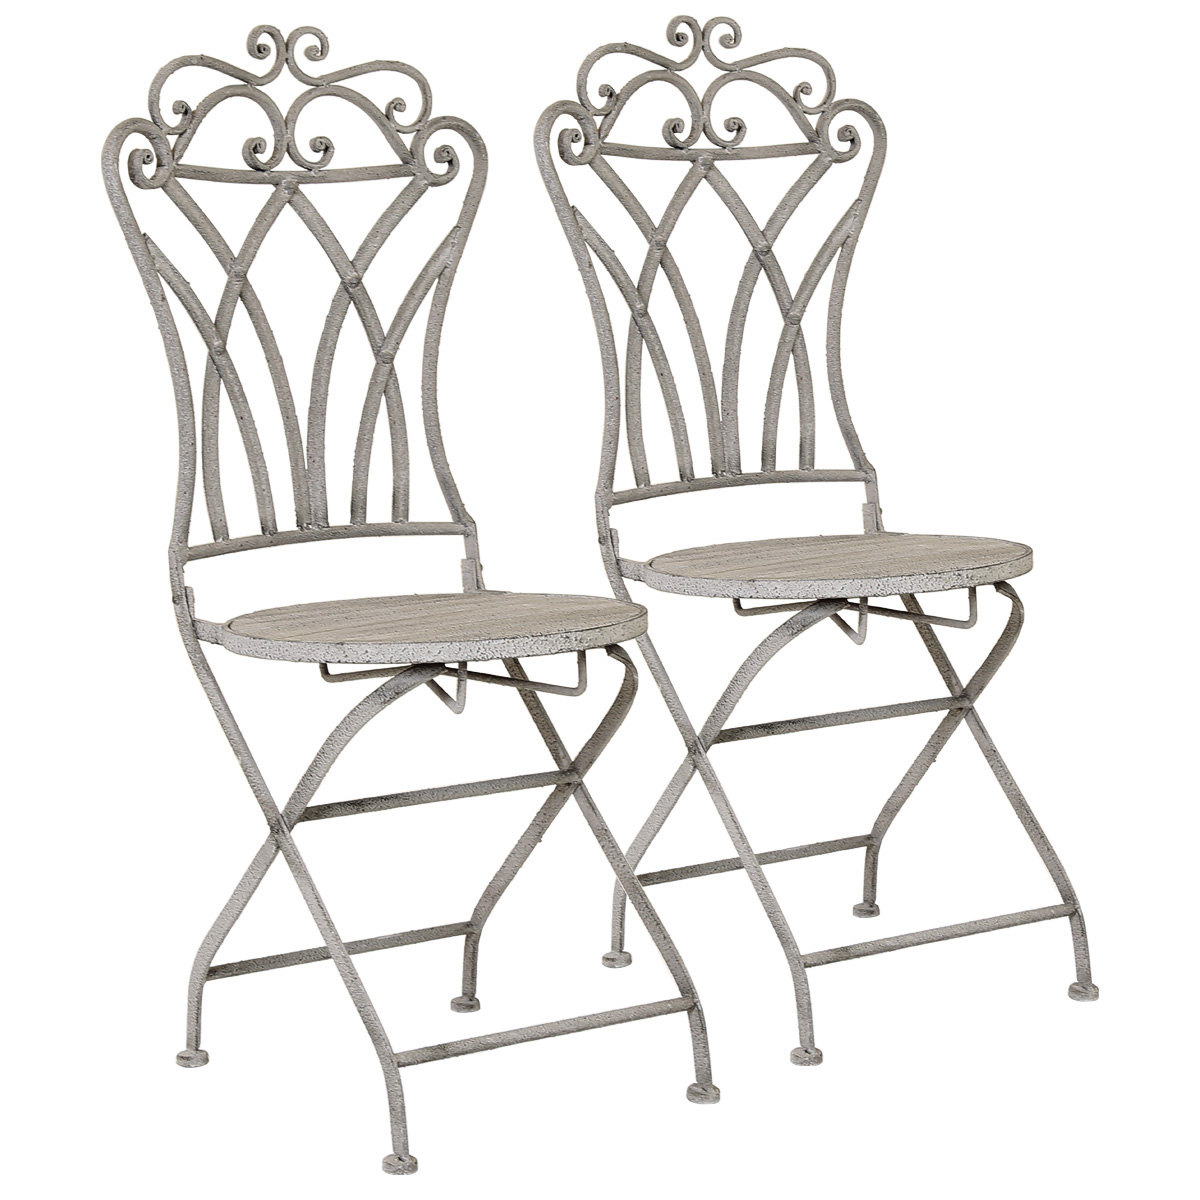 Ornate Metal Folding Bistro Chair Buy Ornate Metal  : glflochair02 charles bentley florence pair of wrought iron chairs with wooden base 1 from joshandira.com size 1200 x 1200 jpeg 242kB